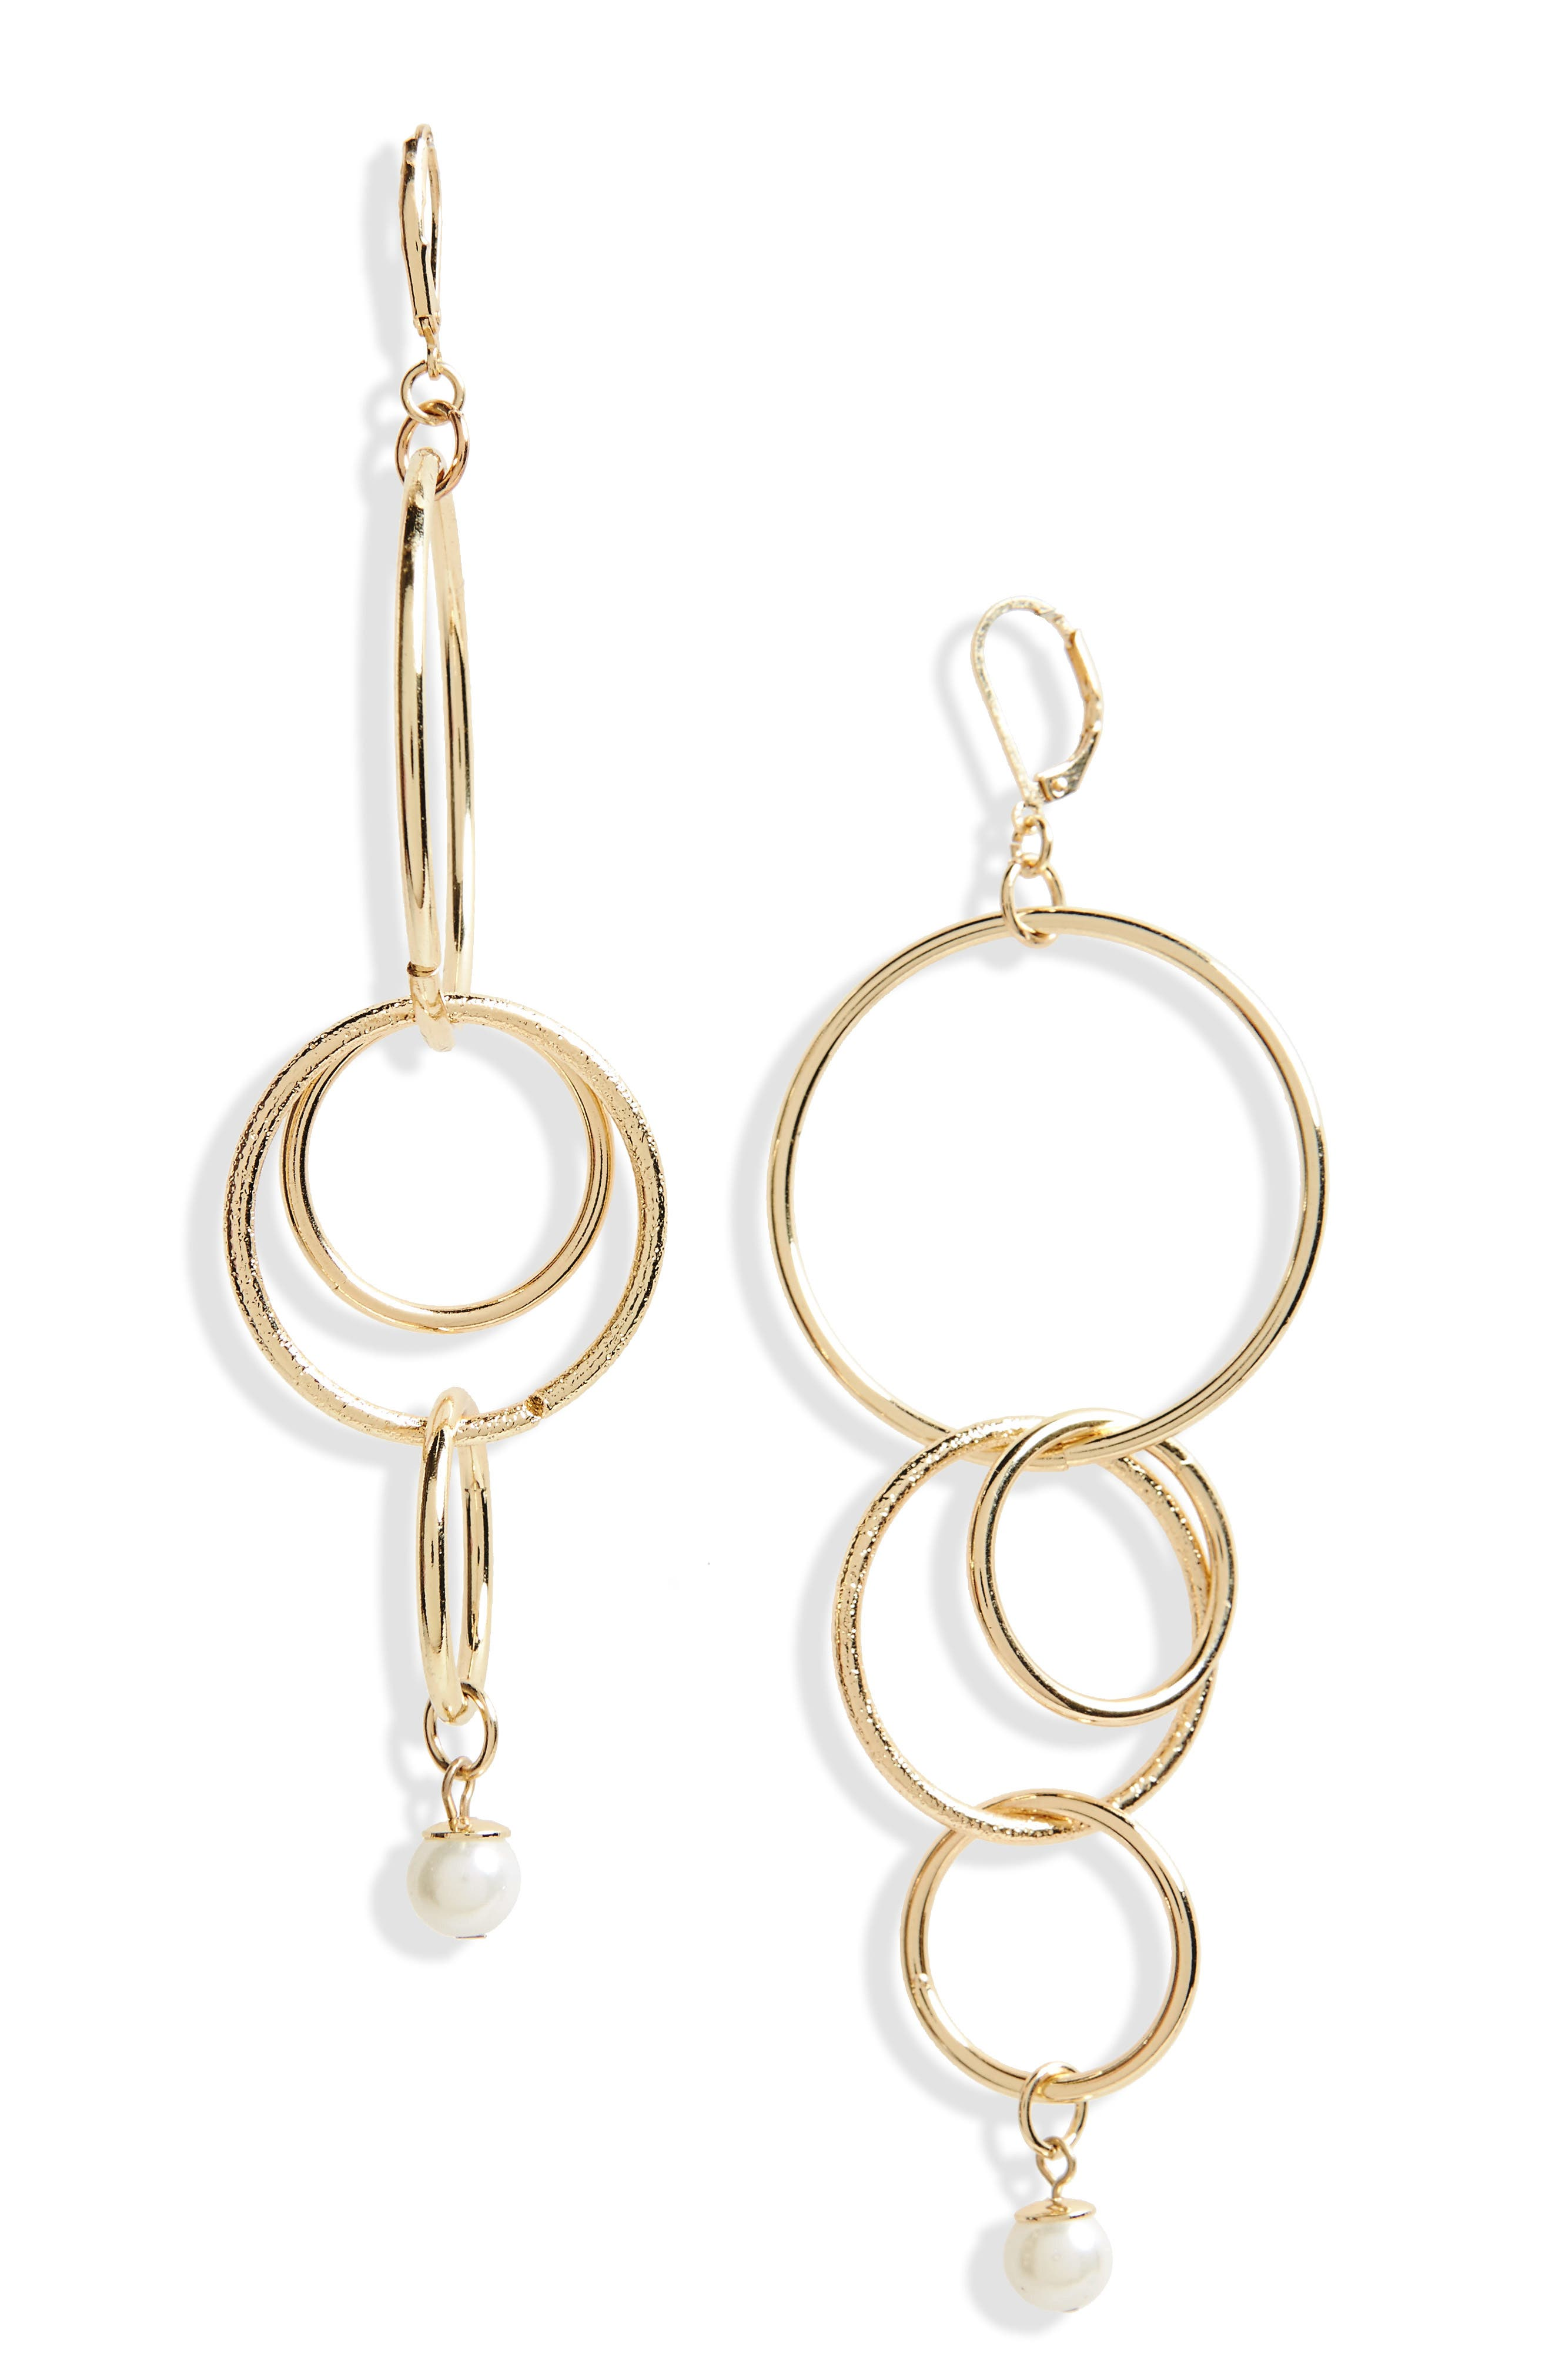 Multi Linked Imitation Pearl Hoop Earrings,                             Main thumbnail 1, color,                             710